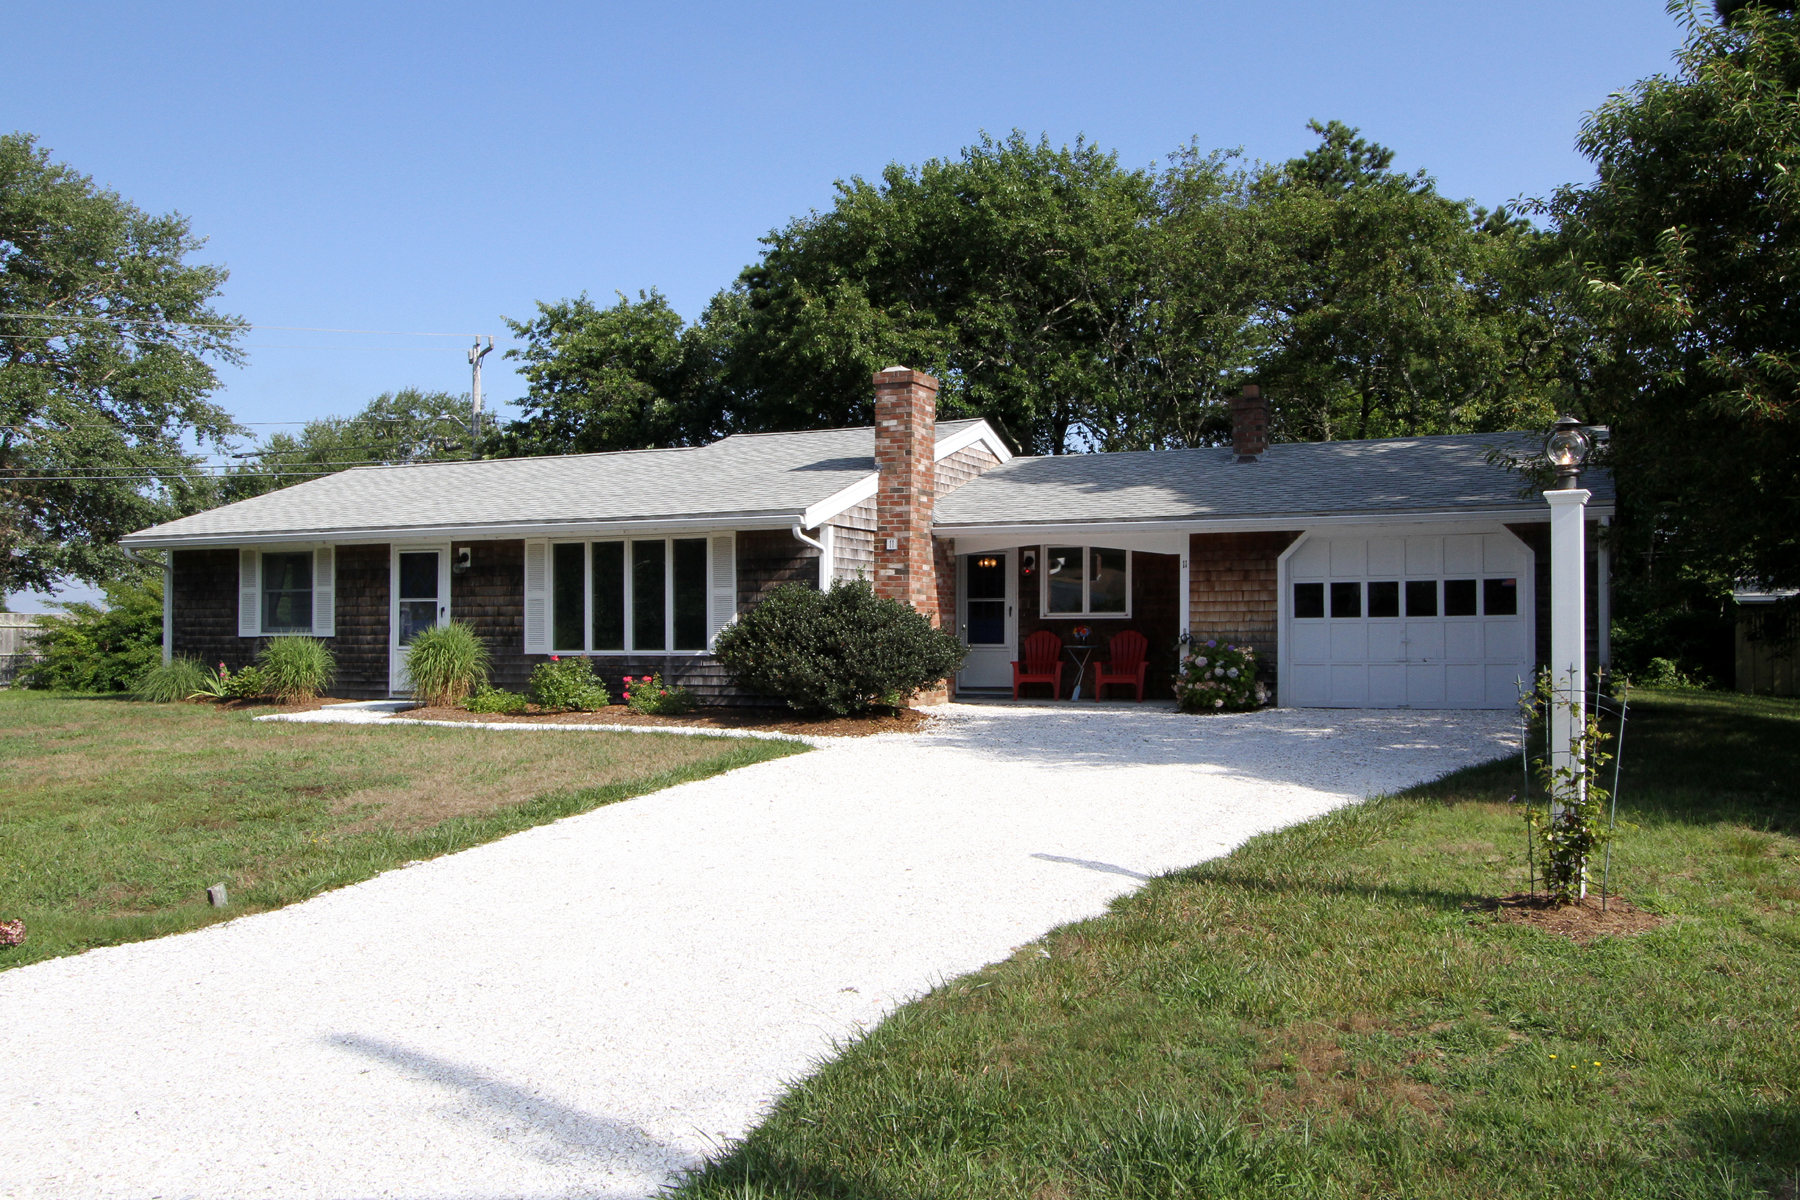 Single Family Home for Sale at 11 Shane Drive, Chatham, MA Chatham, Massachusetts, 02633 United States